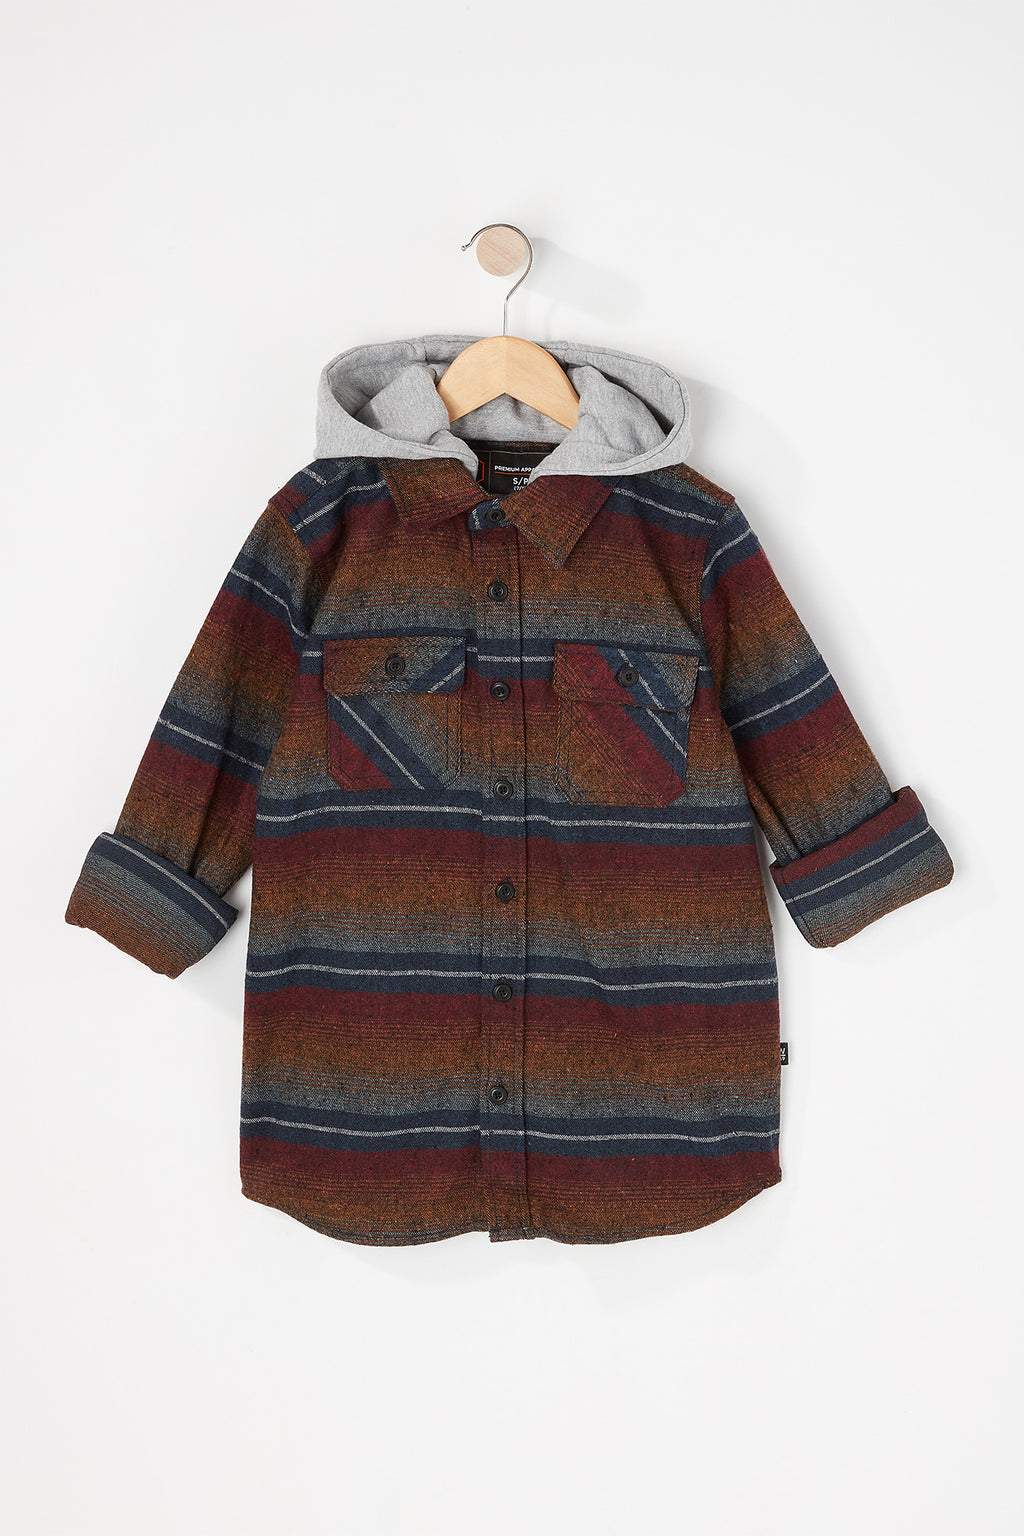 West 49 Boys Striped Plaid 2 Pocket Button Up Hoodie